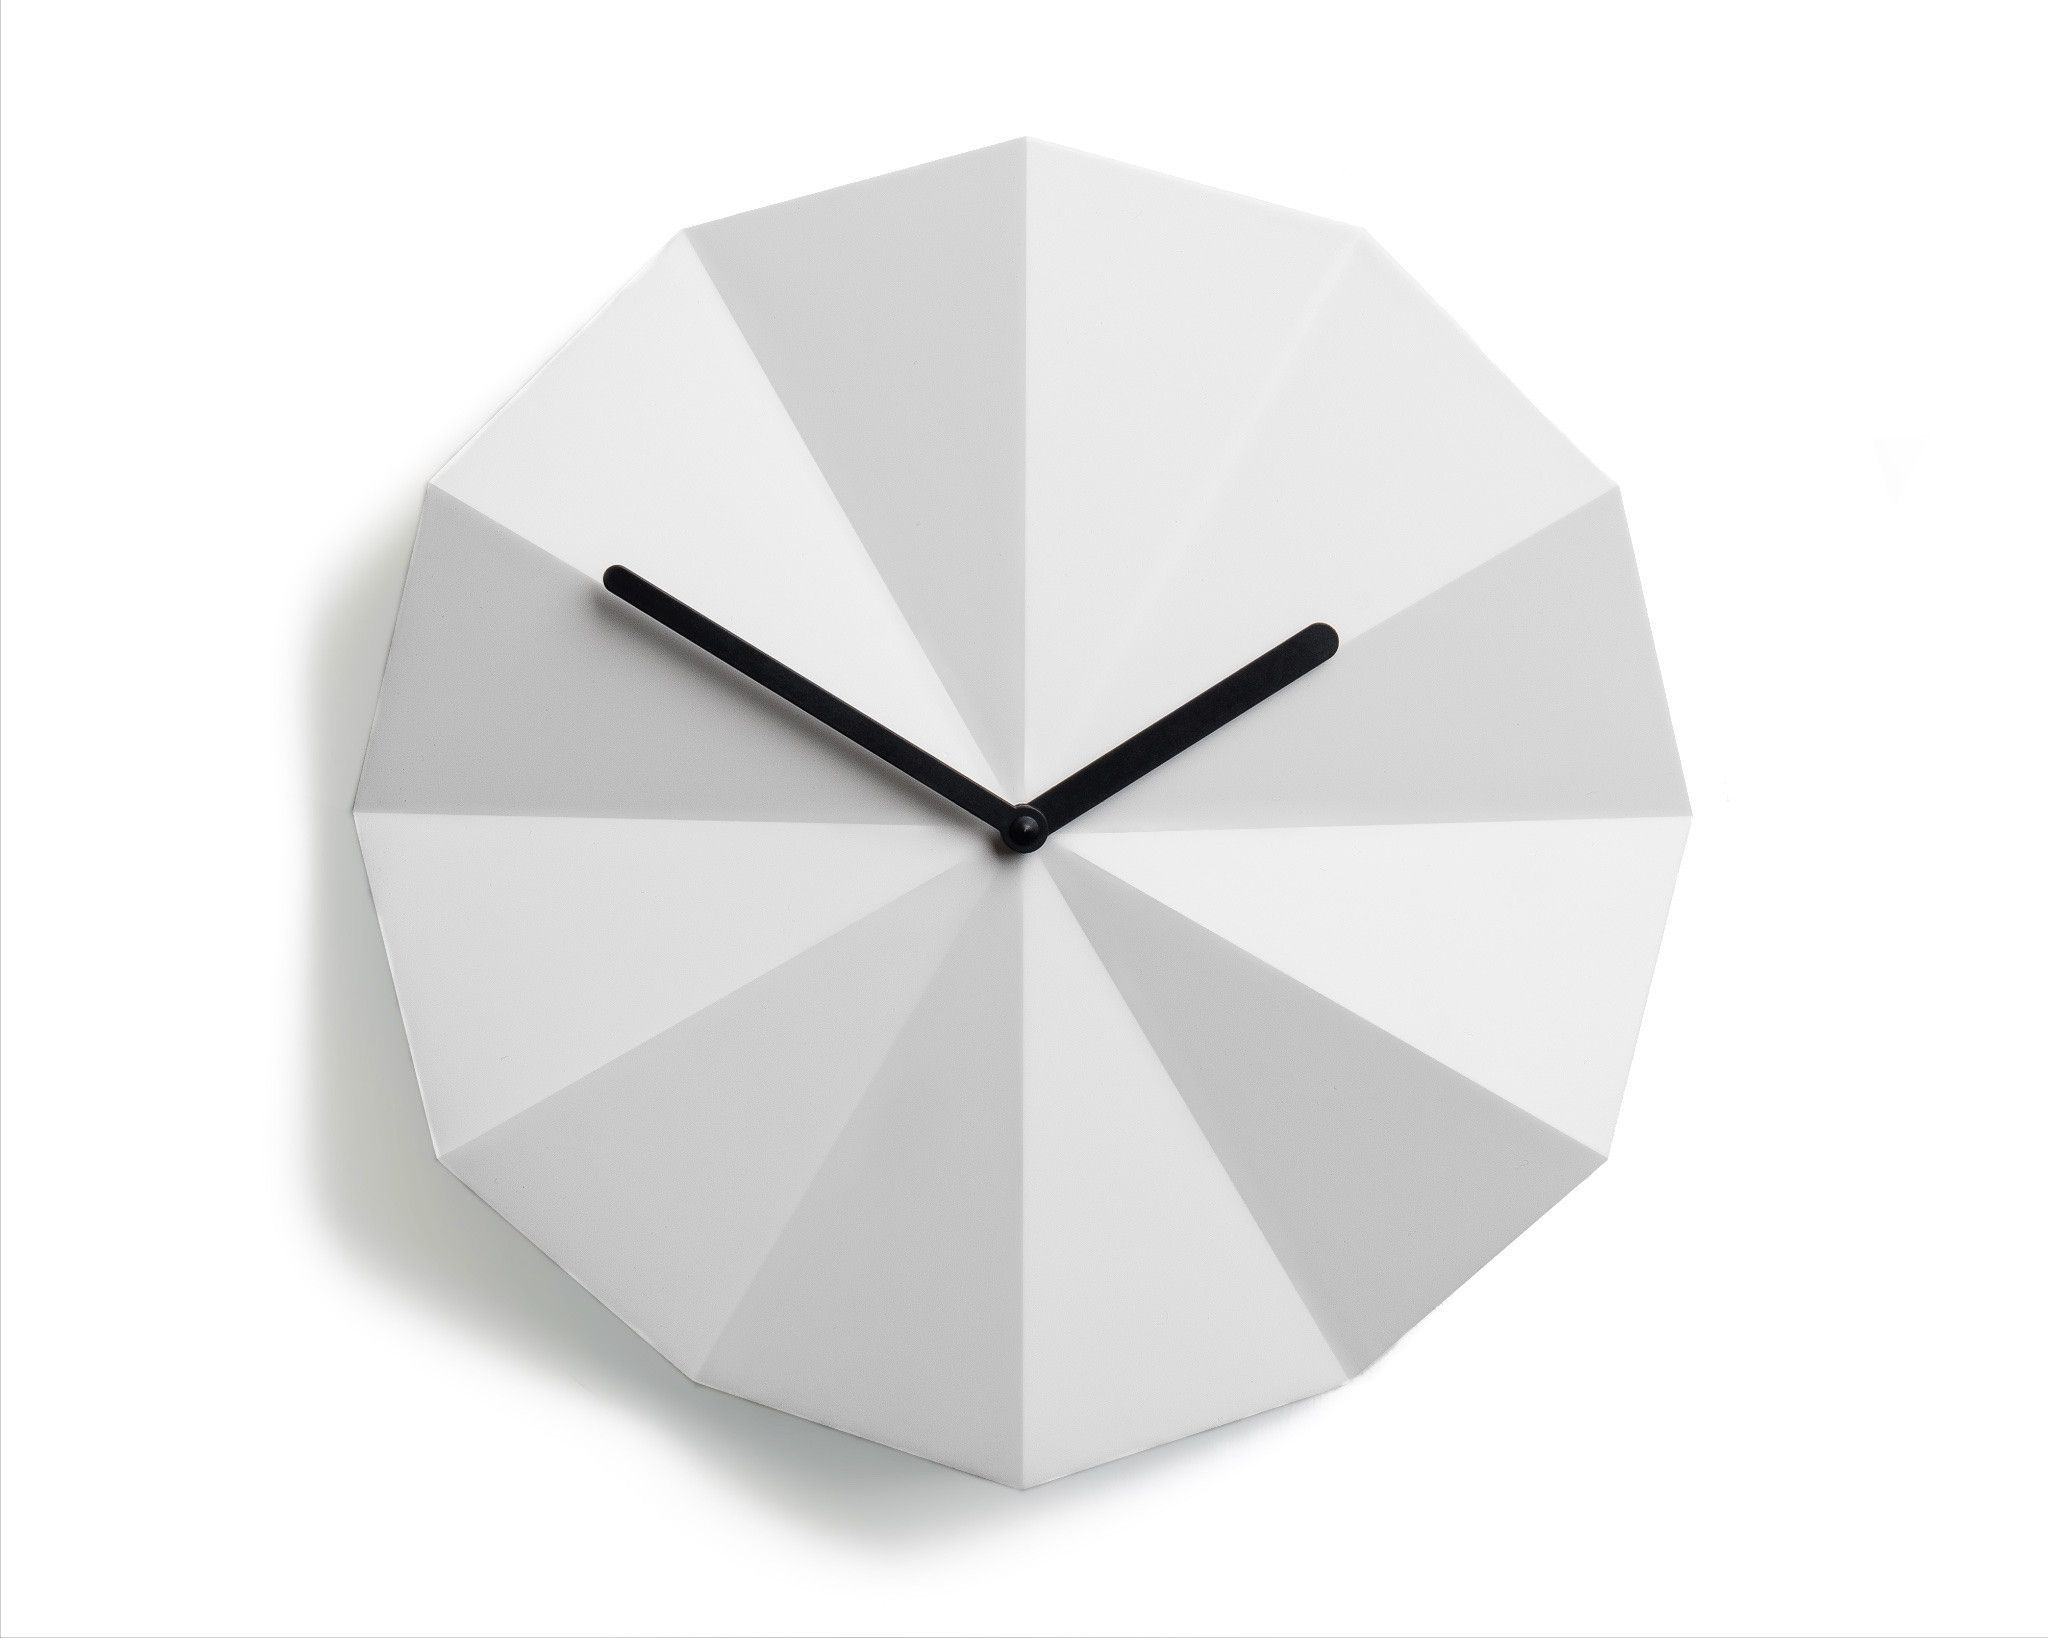 Modern danish design wall clock by lawa design 11 inch white modern danish design wall clock by lawa design 11 inch white amipublicfo Choice Image